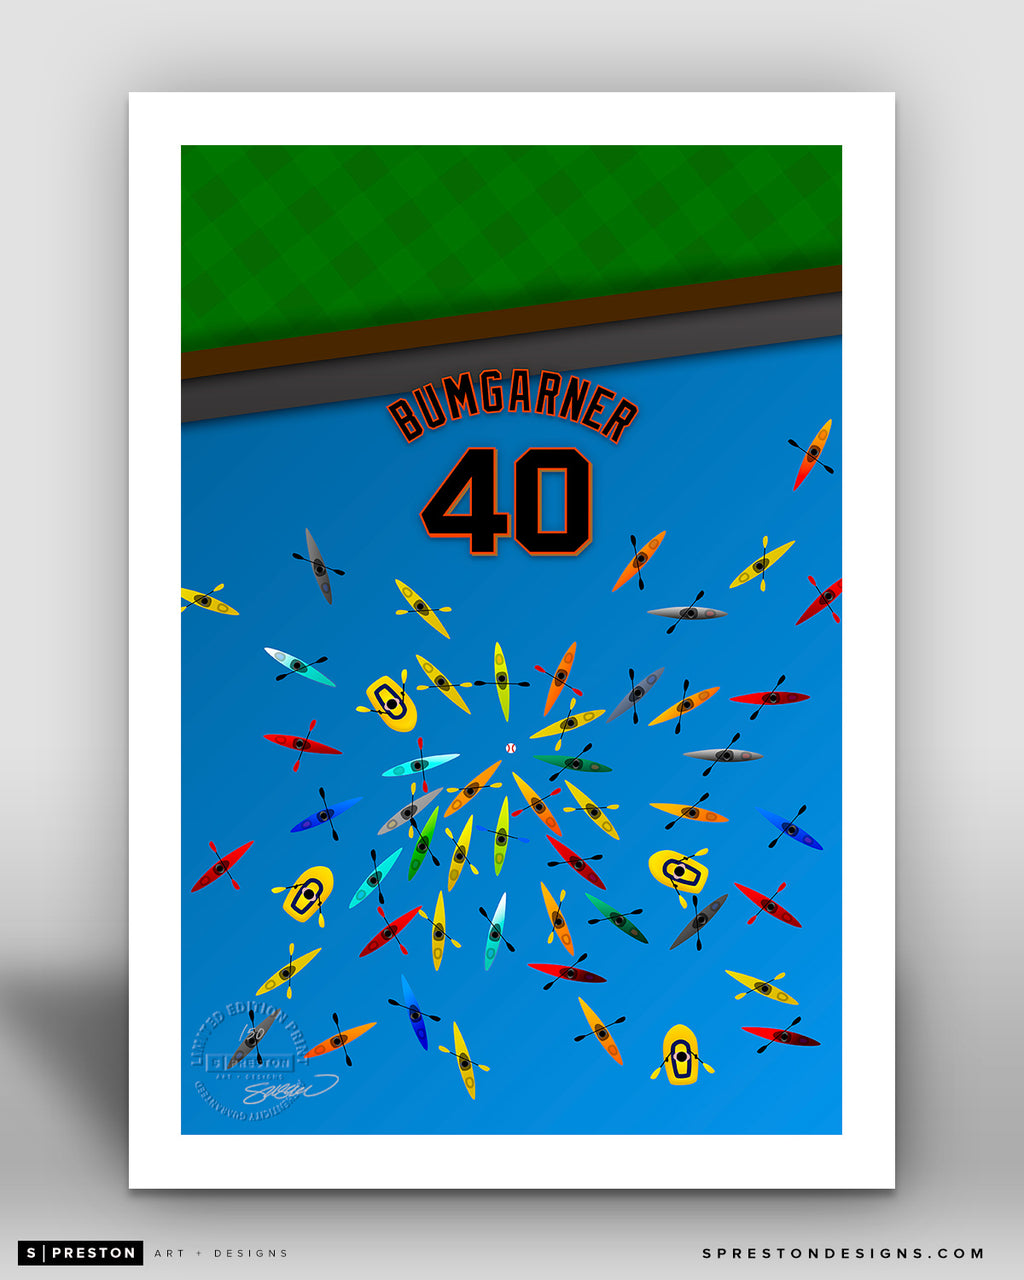 Minimalist Oracle Park - Player Series - Madison Bumgarner